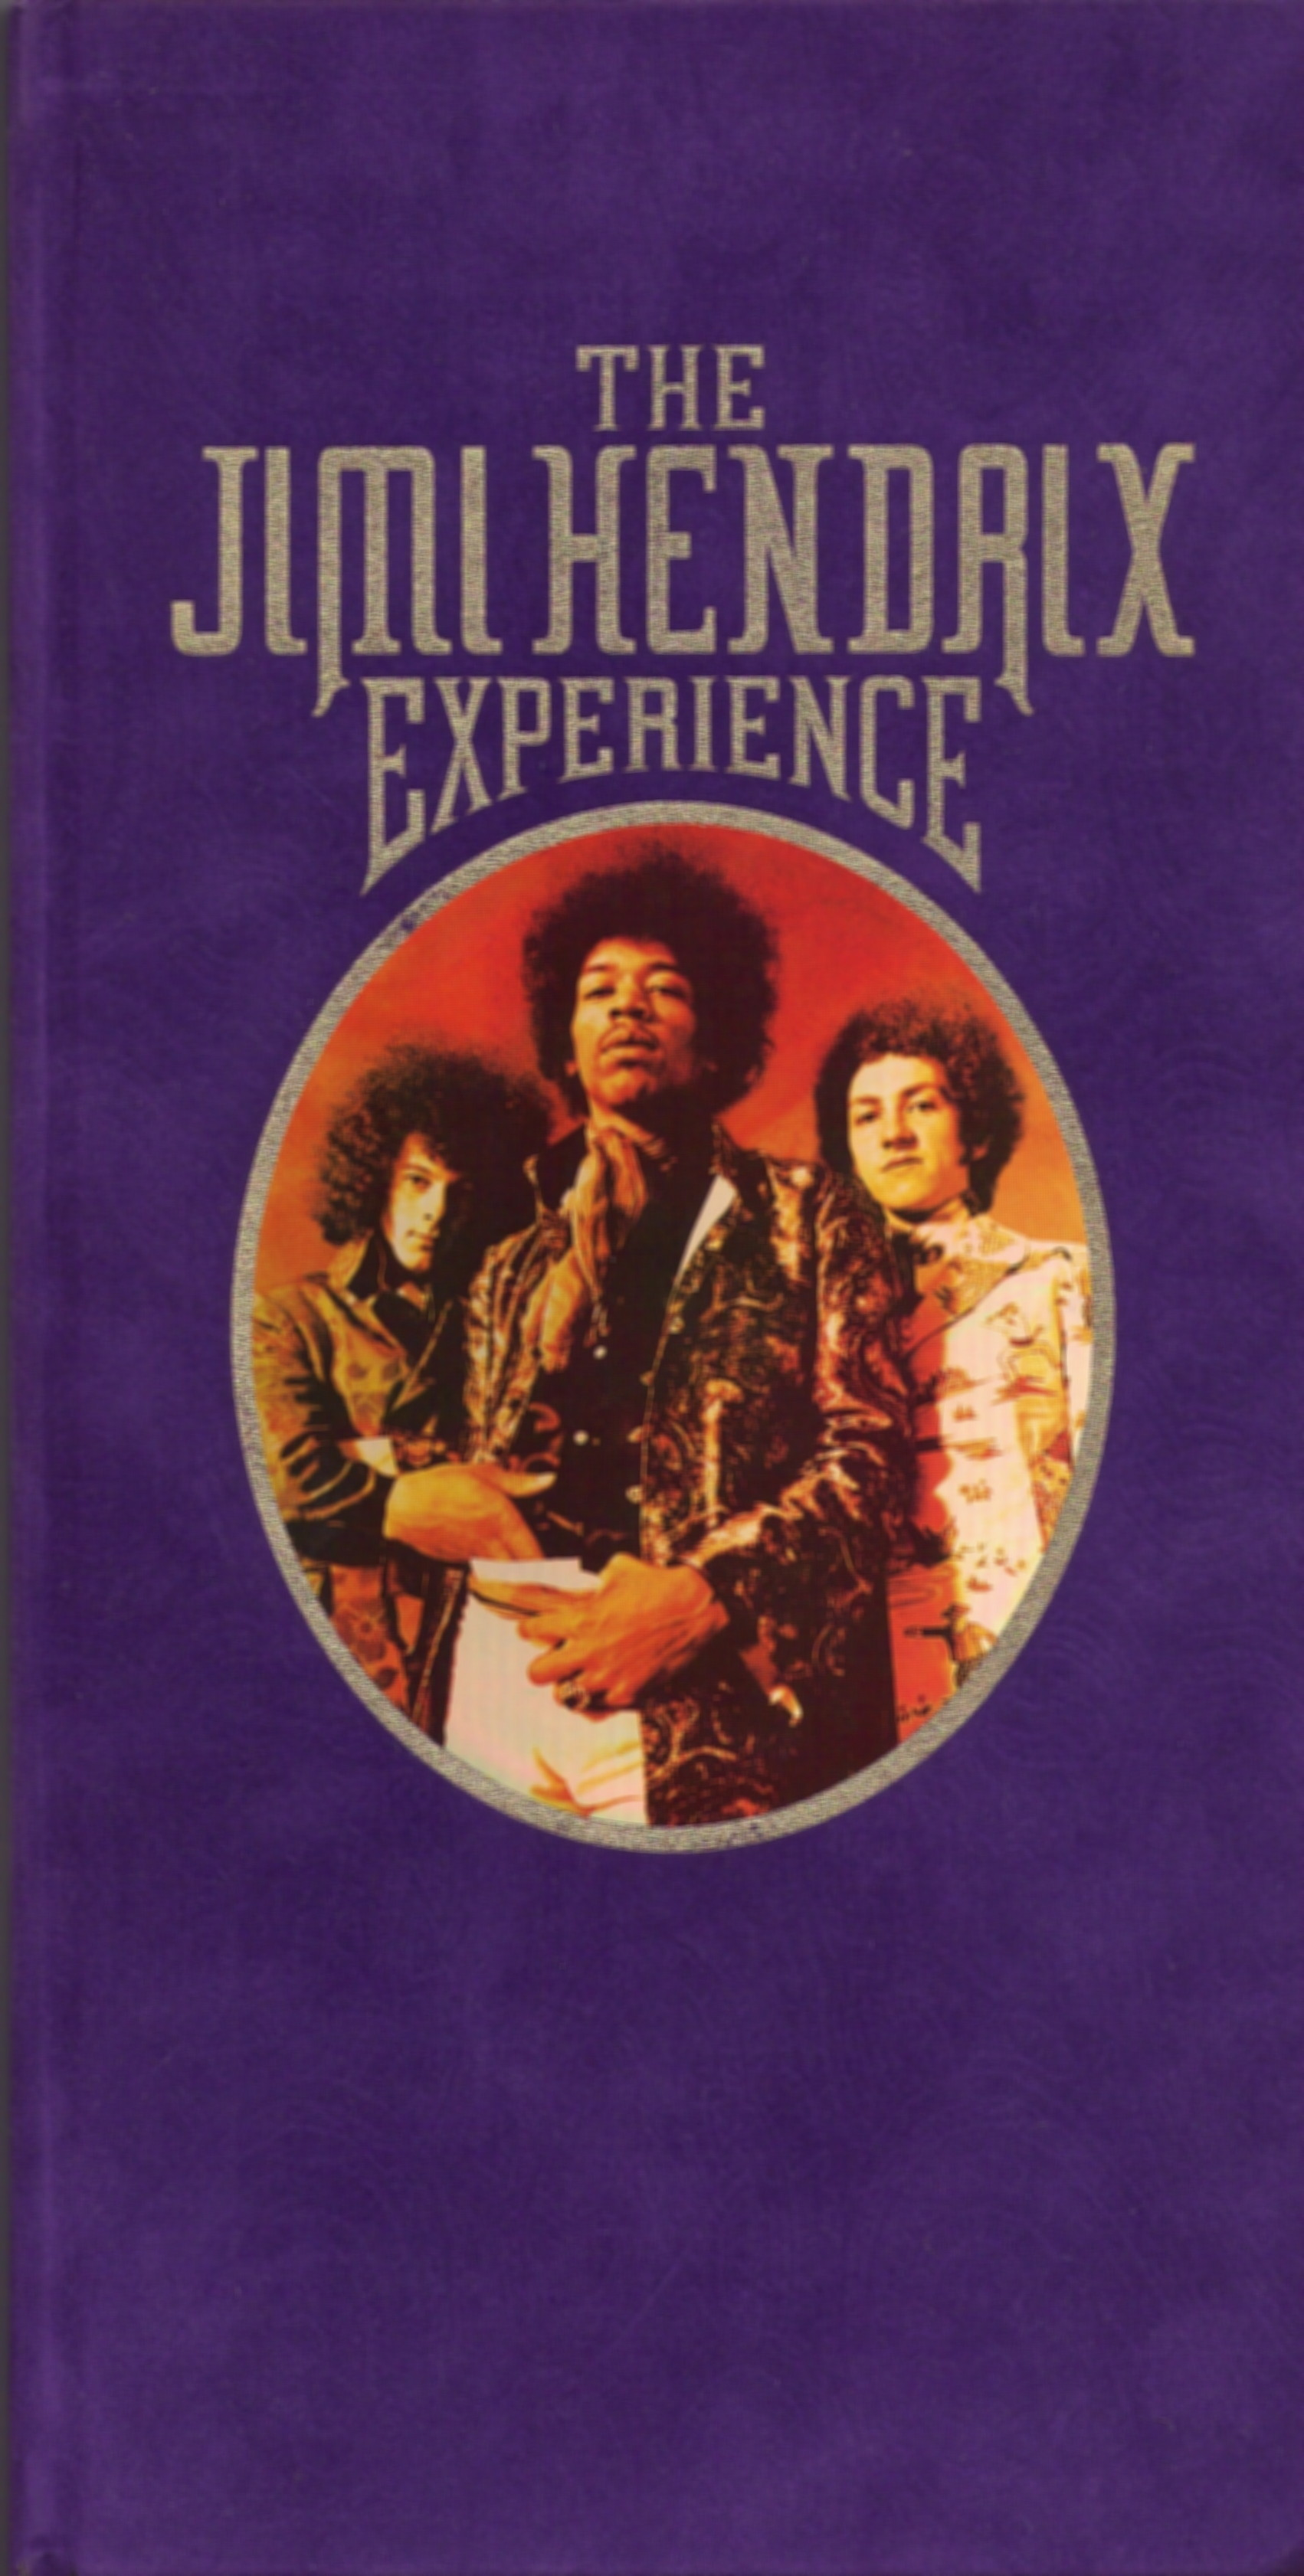 a report on the jimi hendrix experience Jimi hendrix was born on november 27 having settled in england with a new band called the jimi hendrix experience, which consisted of jimi as guitarist and.